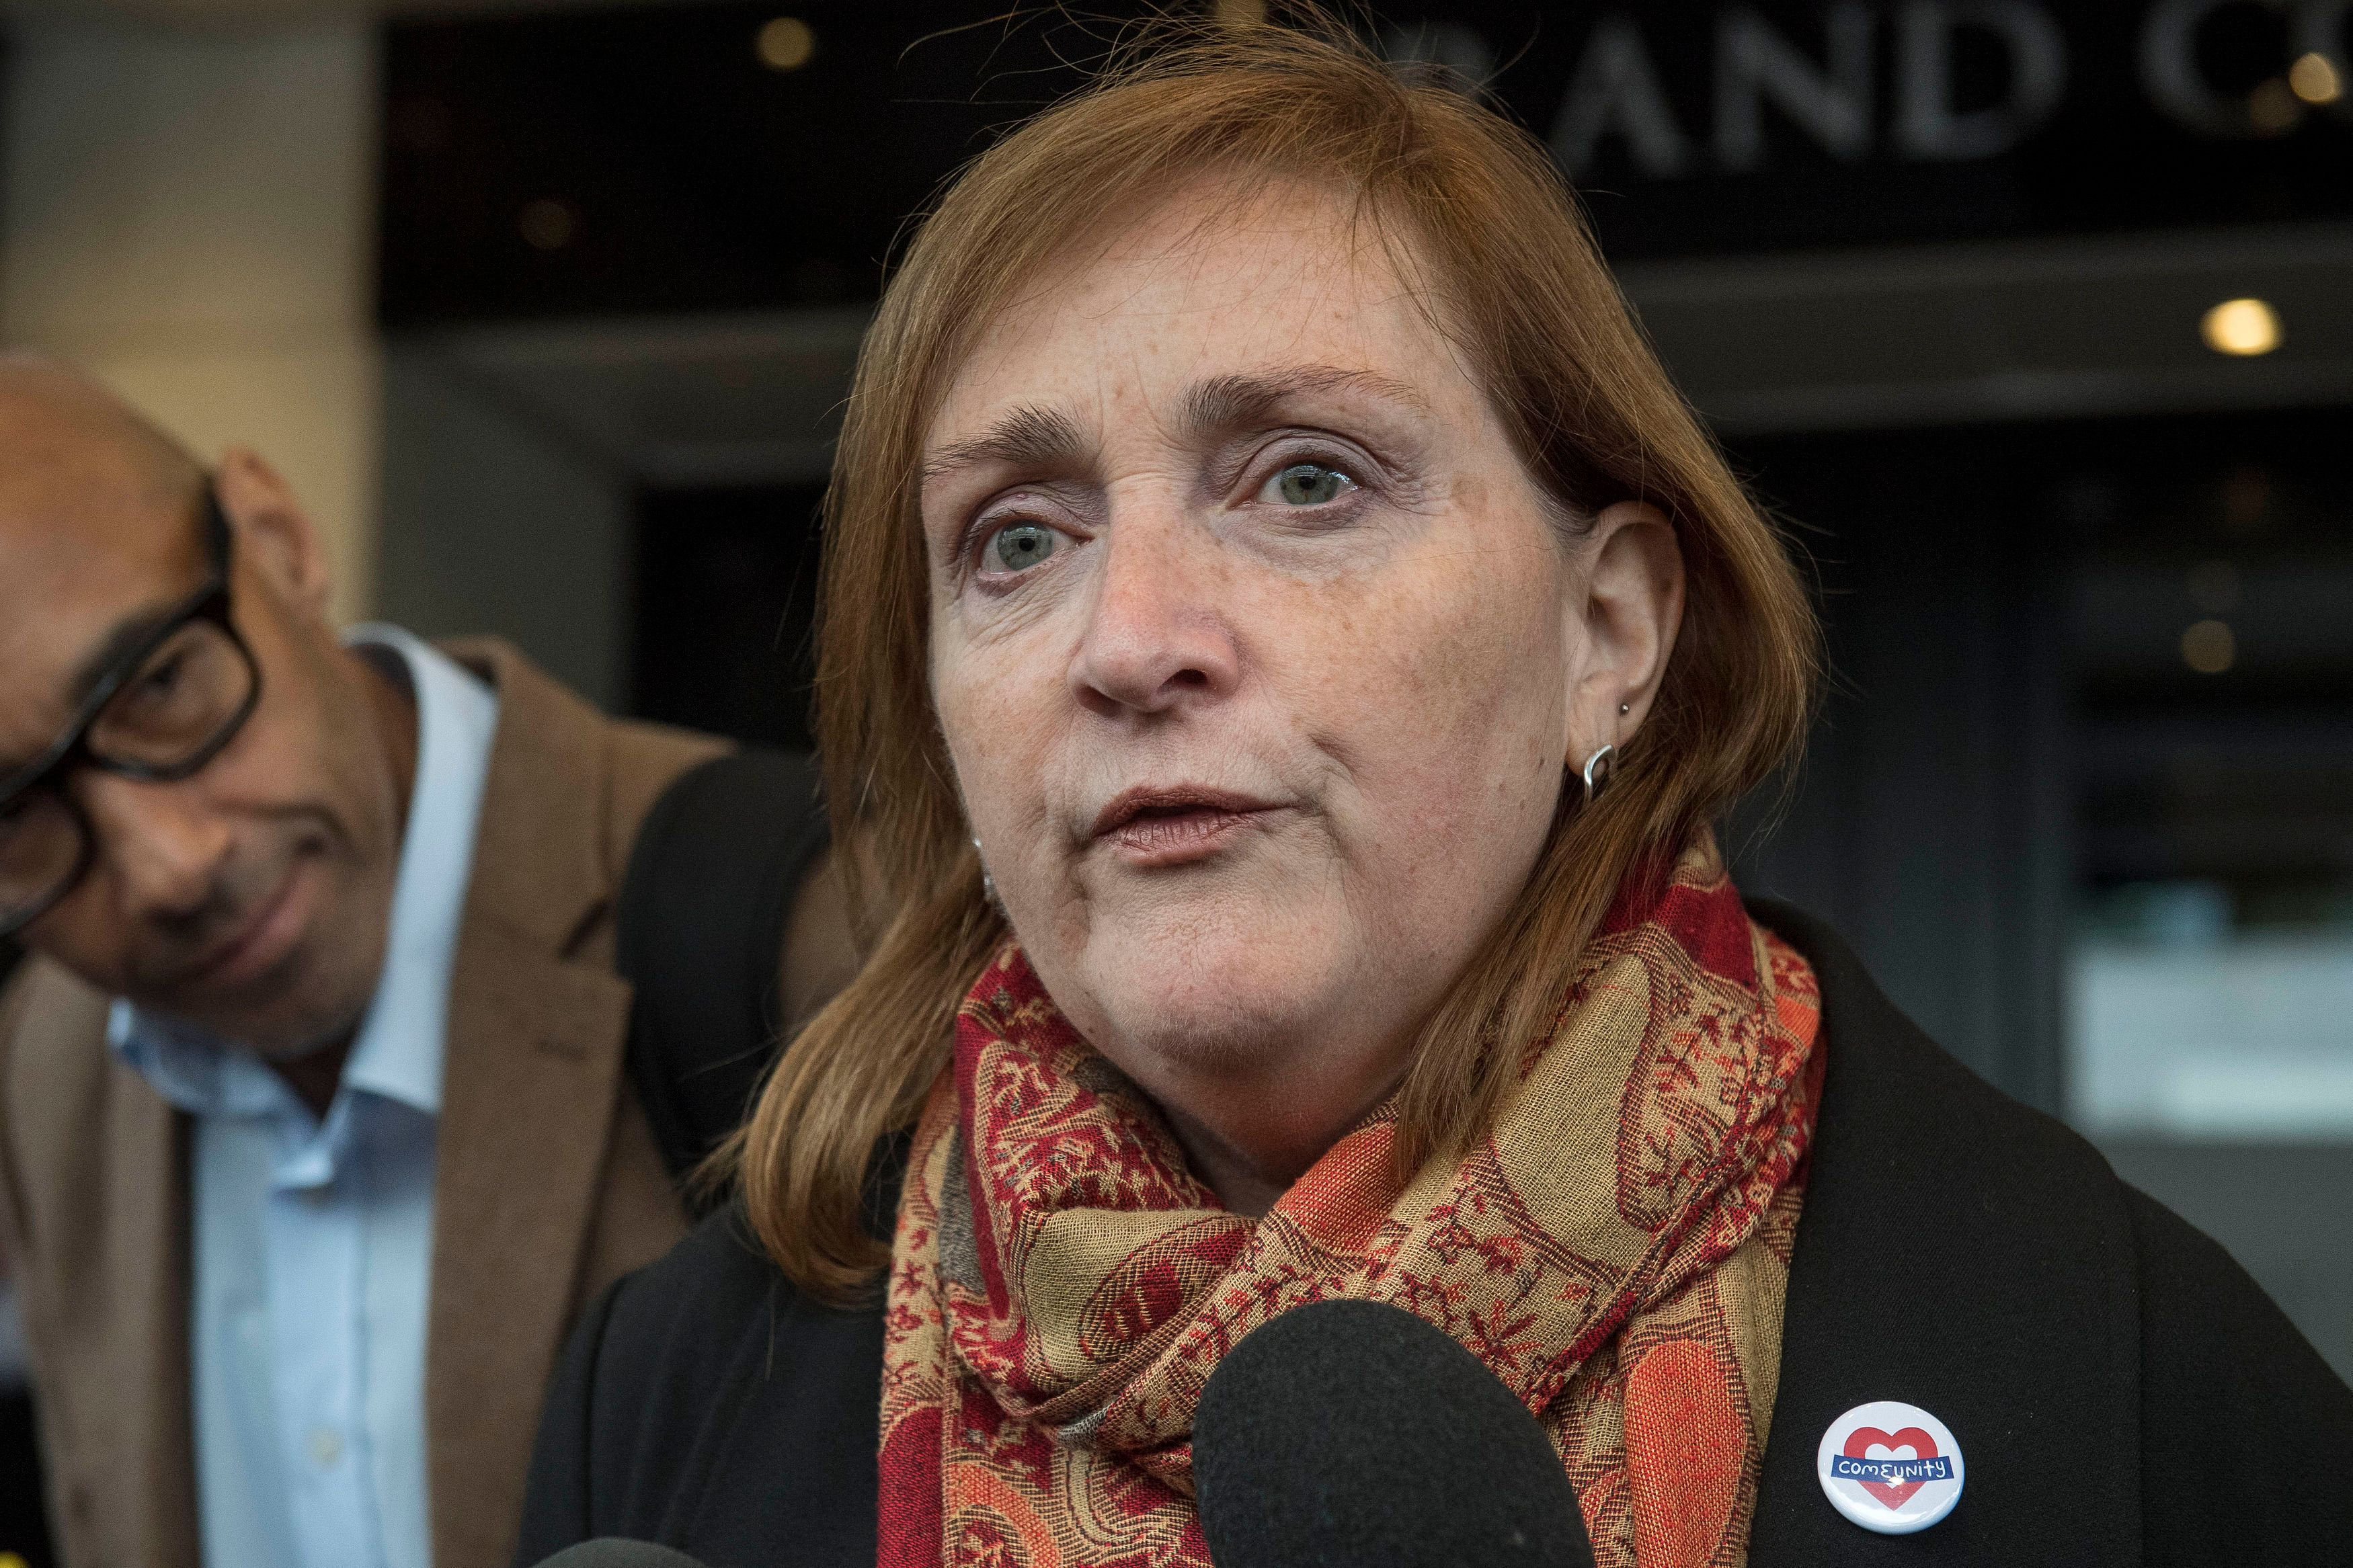 Grenfell Inquiry Beginning To Look Like A Stitch-Up, Says Labour MP Emma Dent